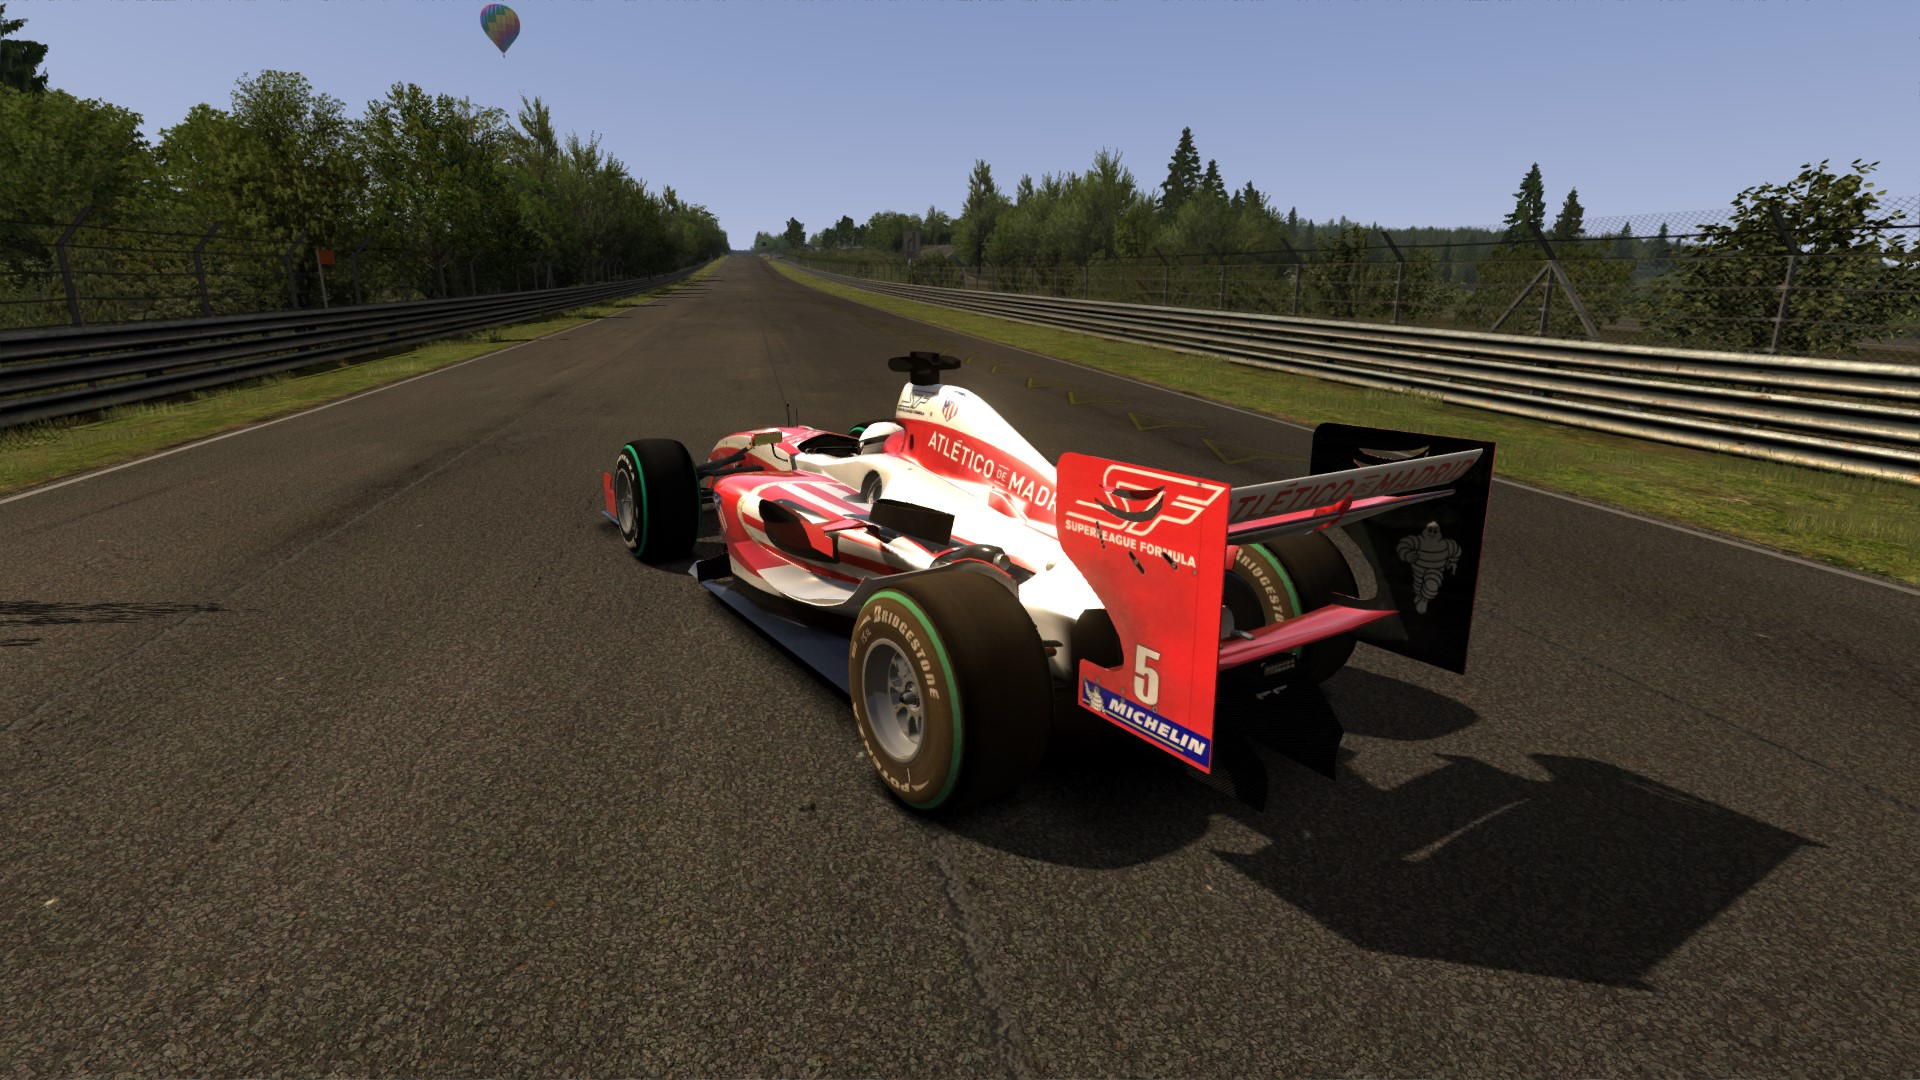 Screenshot_superleague_formula_ks_nordschleife_17-6-119-19-12-1.jpg